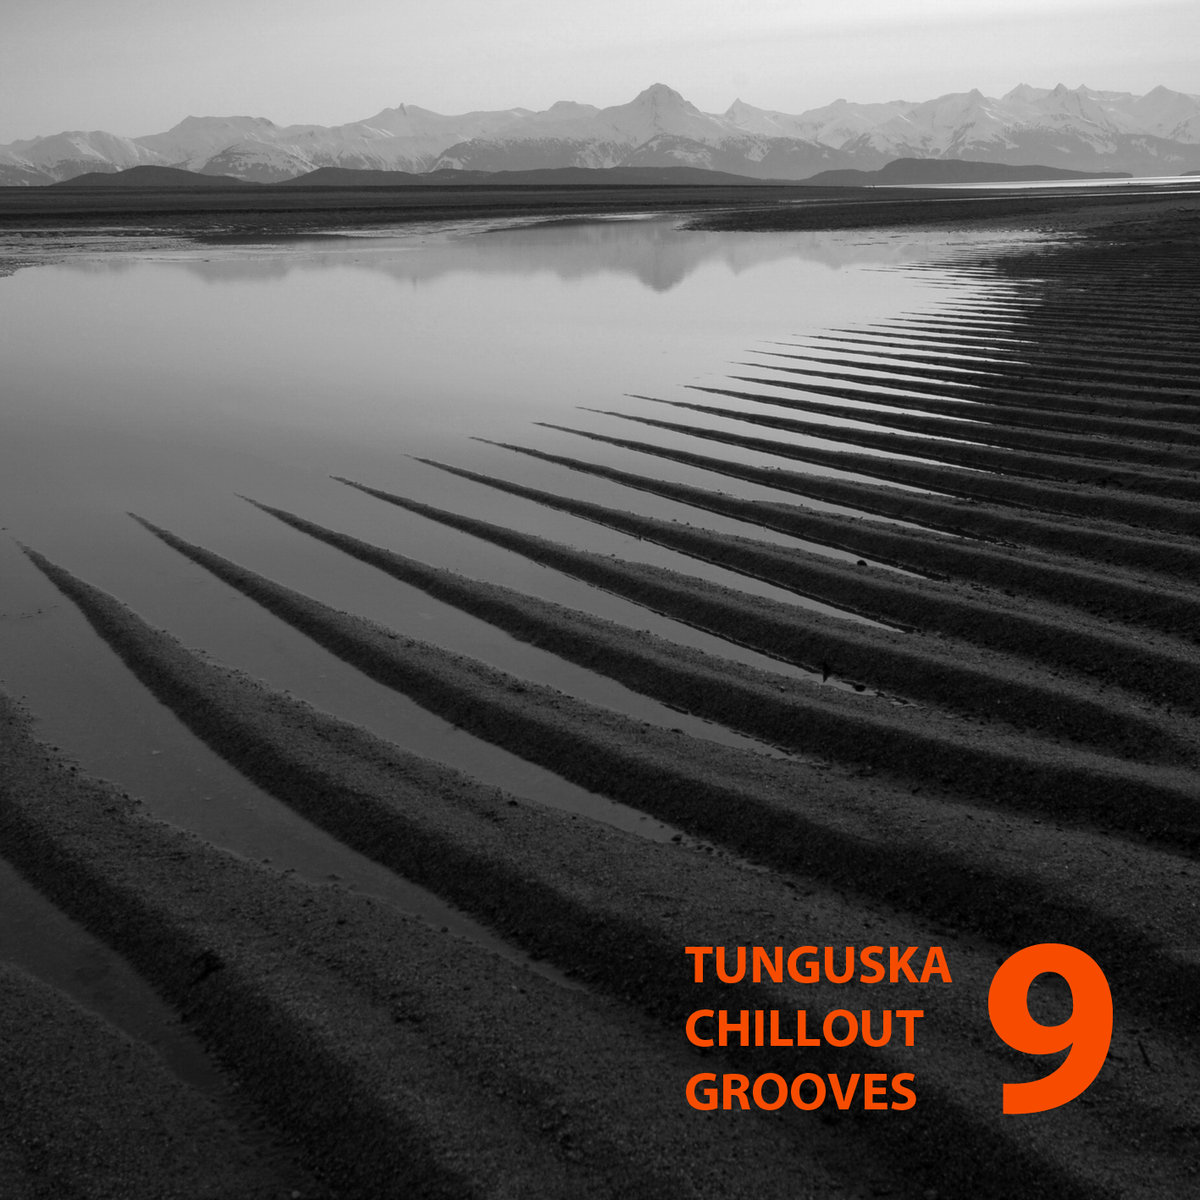 Panna Cotta - Can't Do Without You @ 'Tunguska Chillout Grooves - Volume 9' album (electronic, ambient)